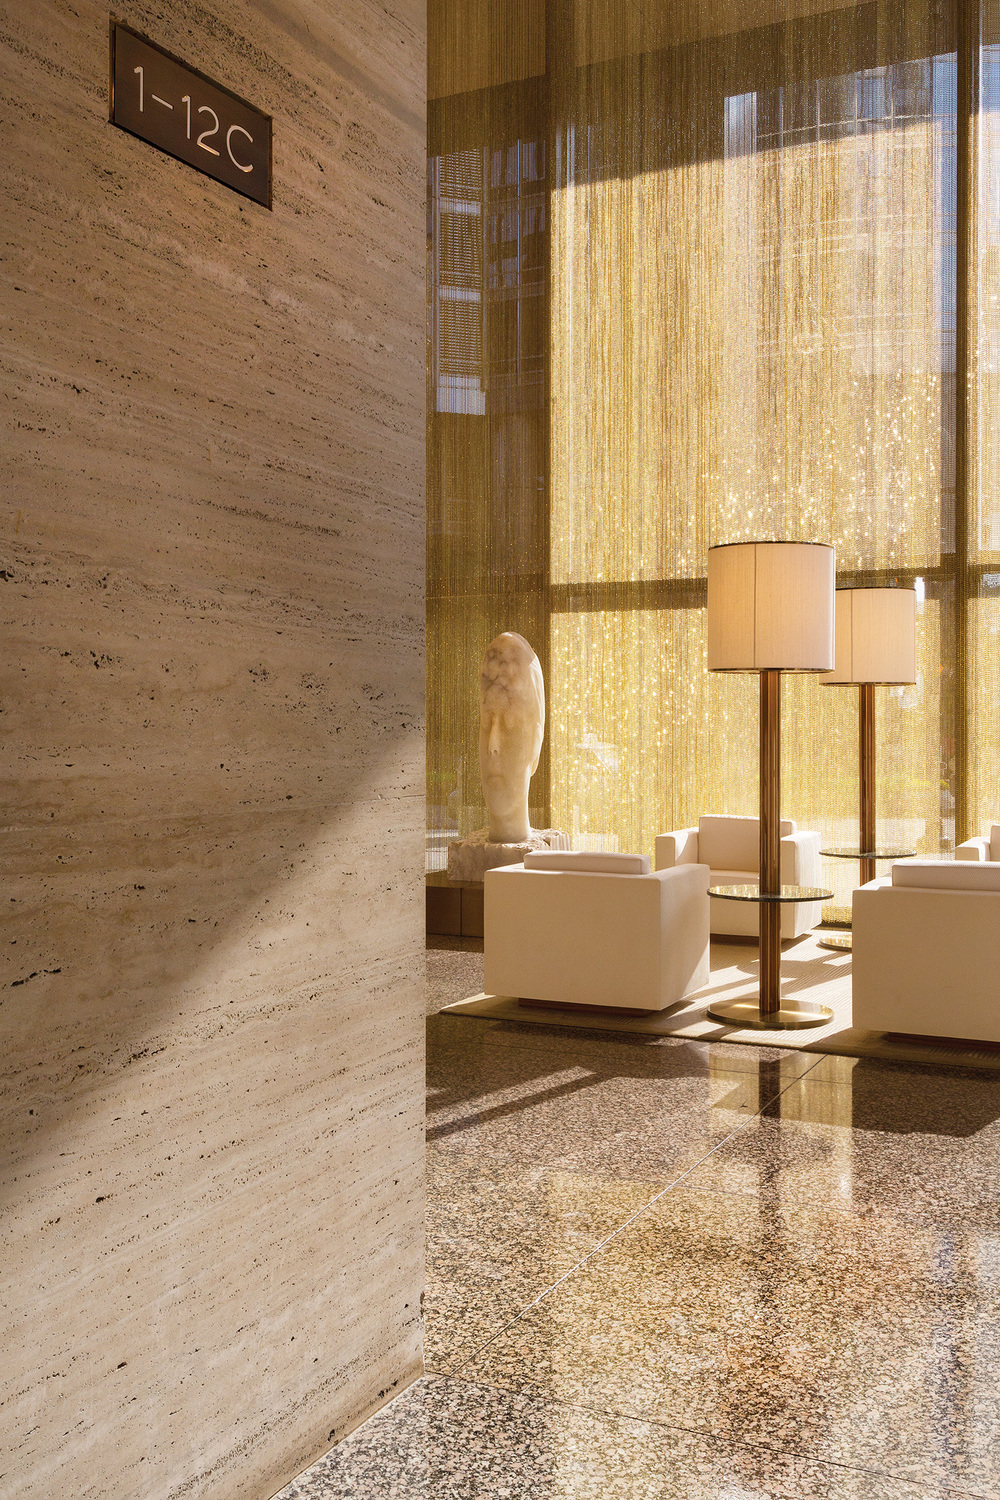 Langham Chicago Hotel / Interiors by Lohan Anderson, Richmond International & The Rockwell Group